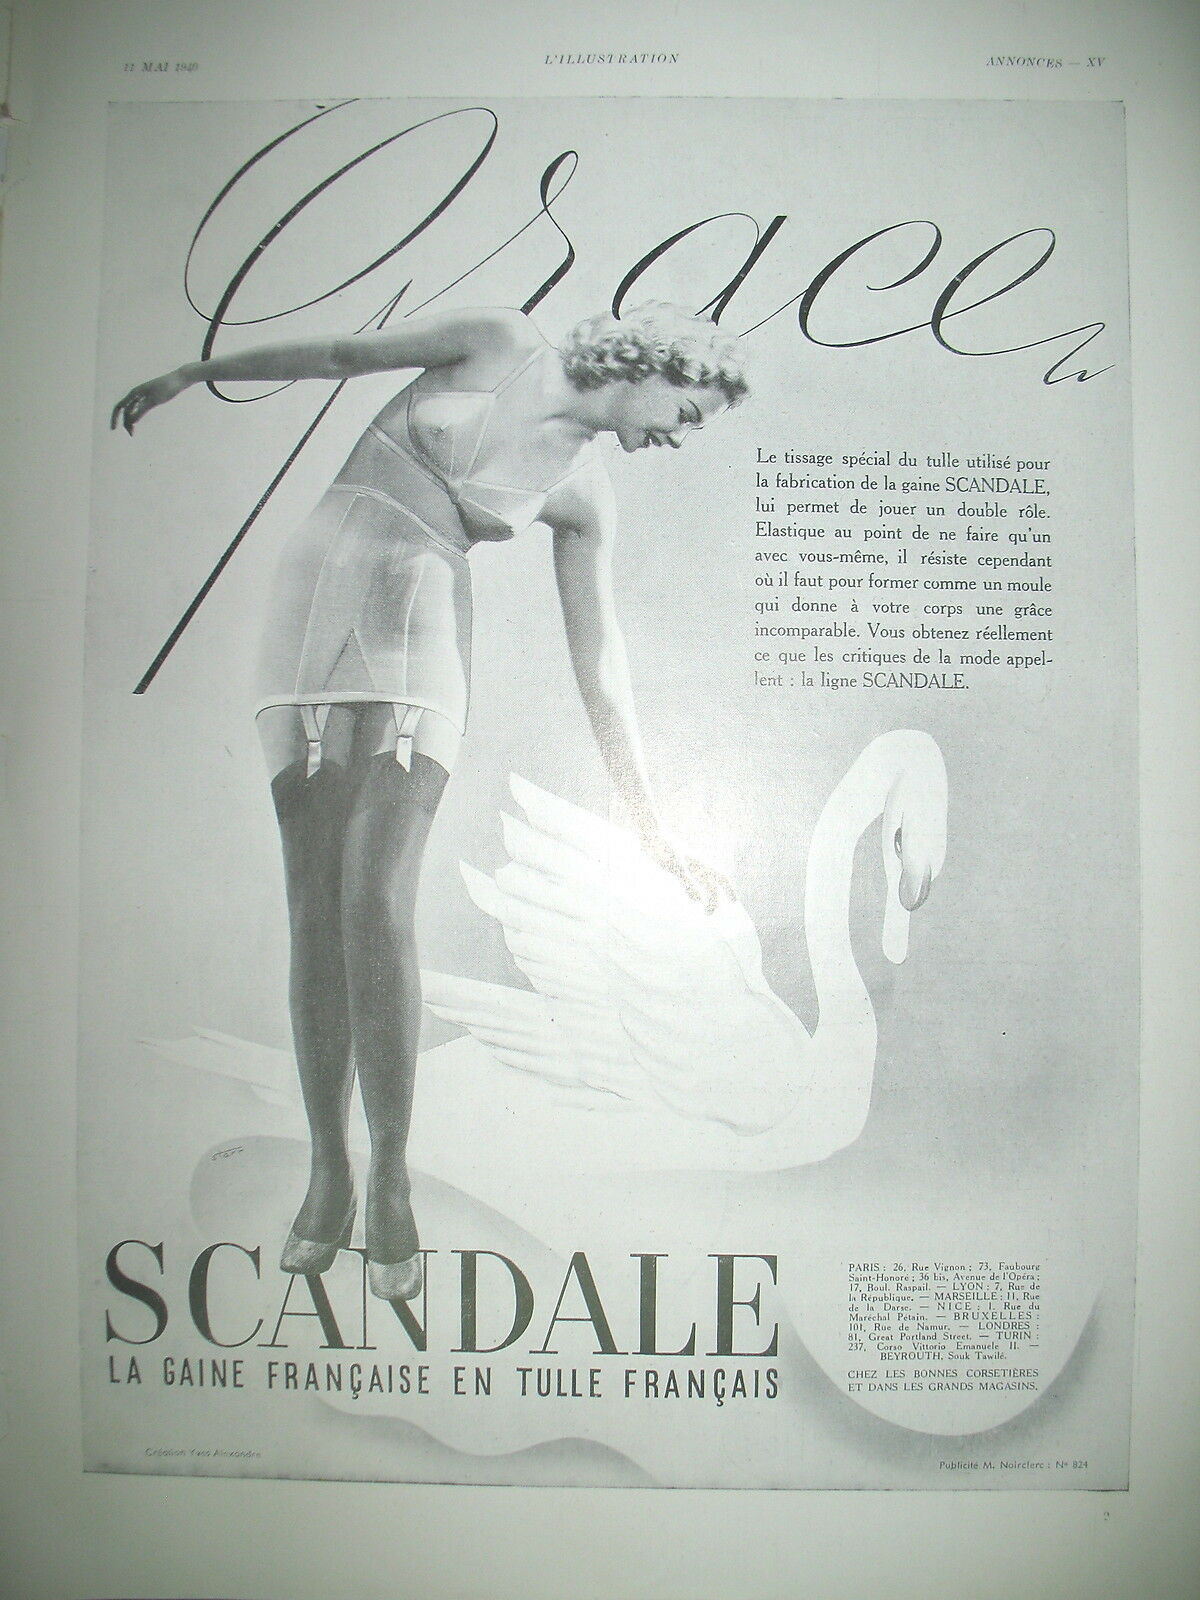 scandale 1940-starr grace